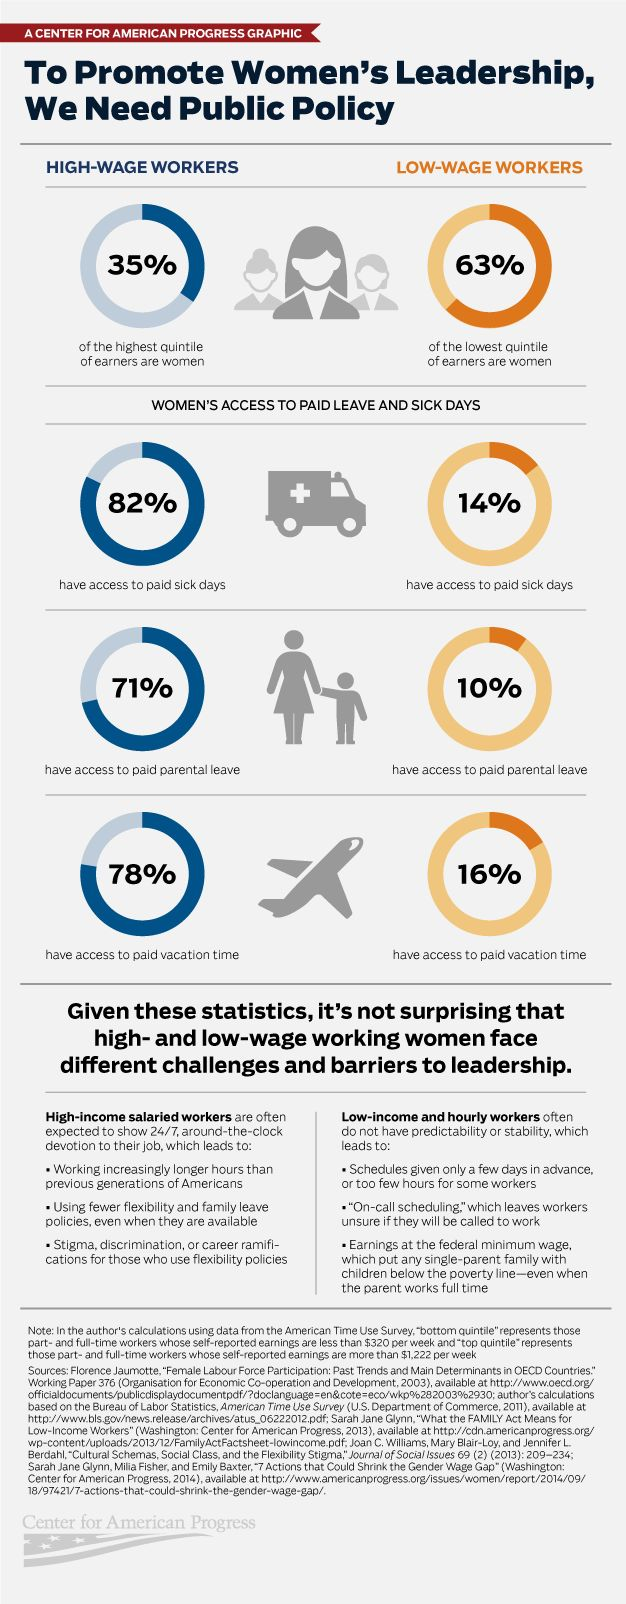 Infographic: To Promote Women's Leadership, We Need Public Policy By Emily Baxter, Judith Warner, Sarah Jane Glynn